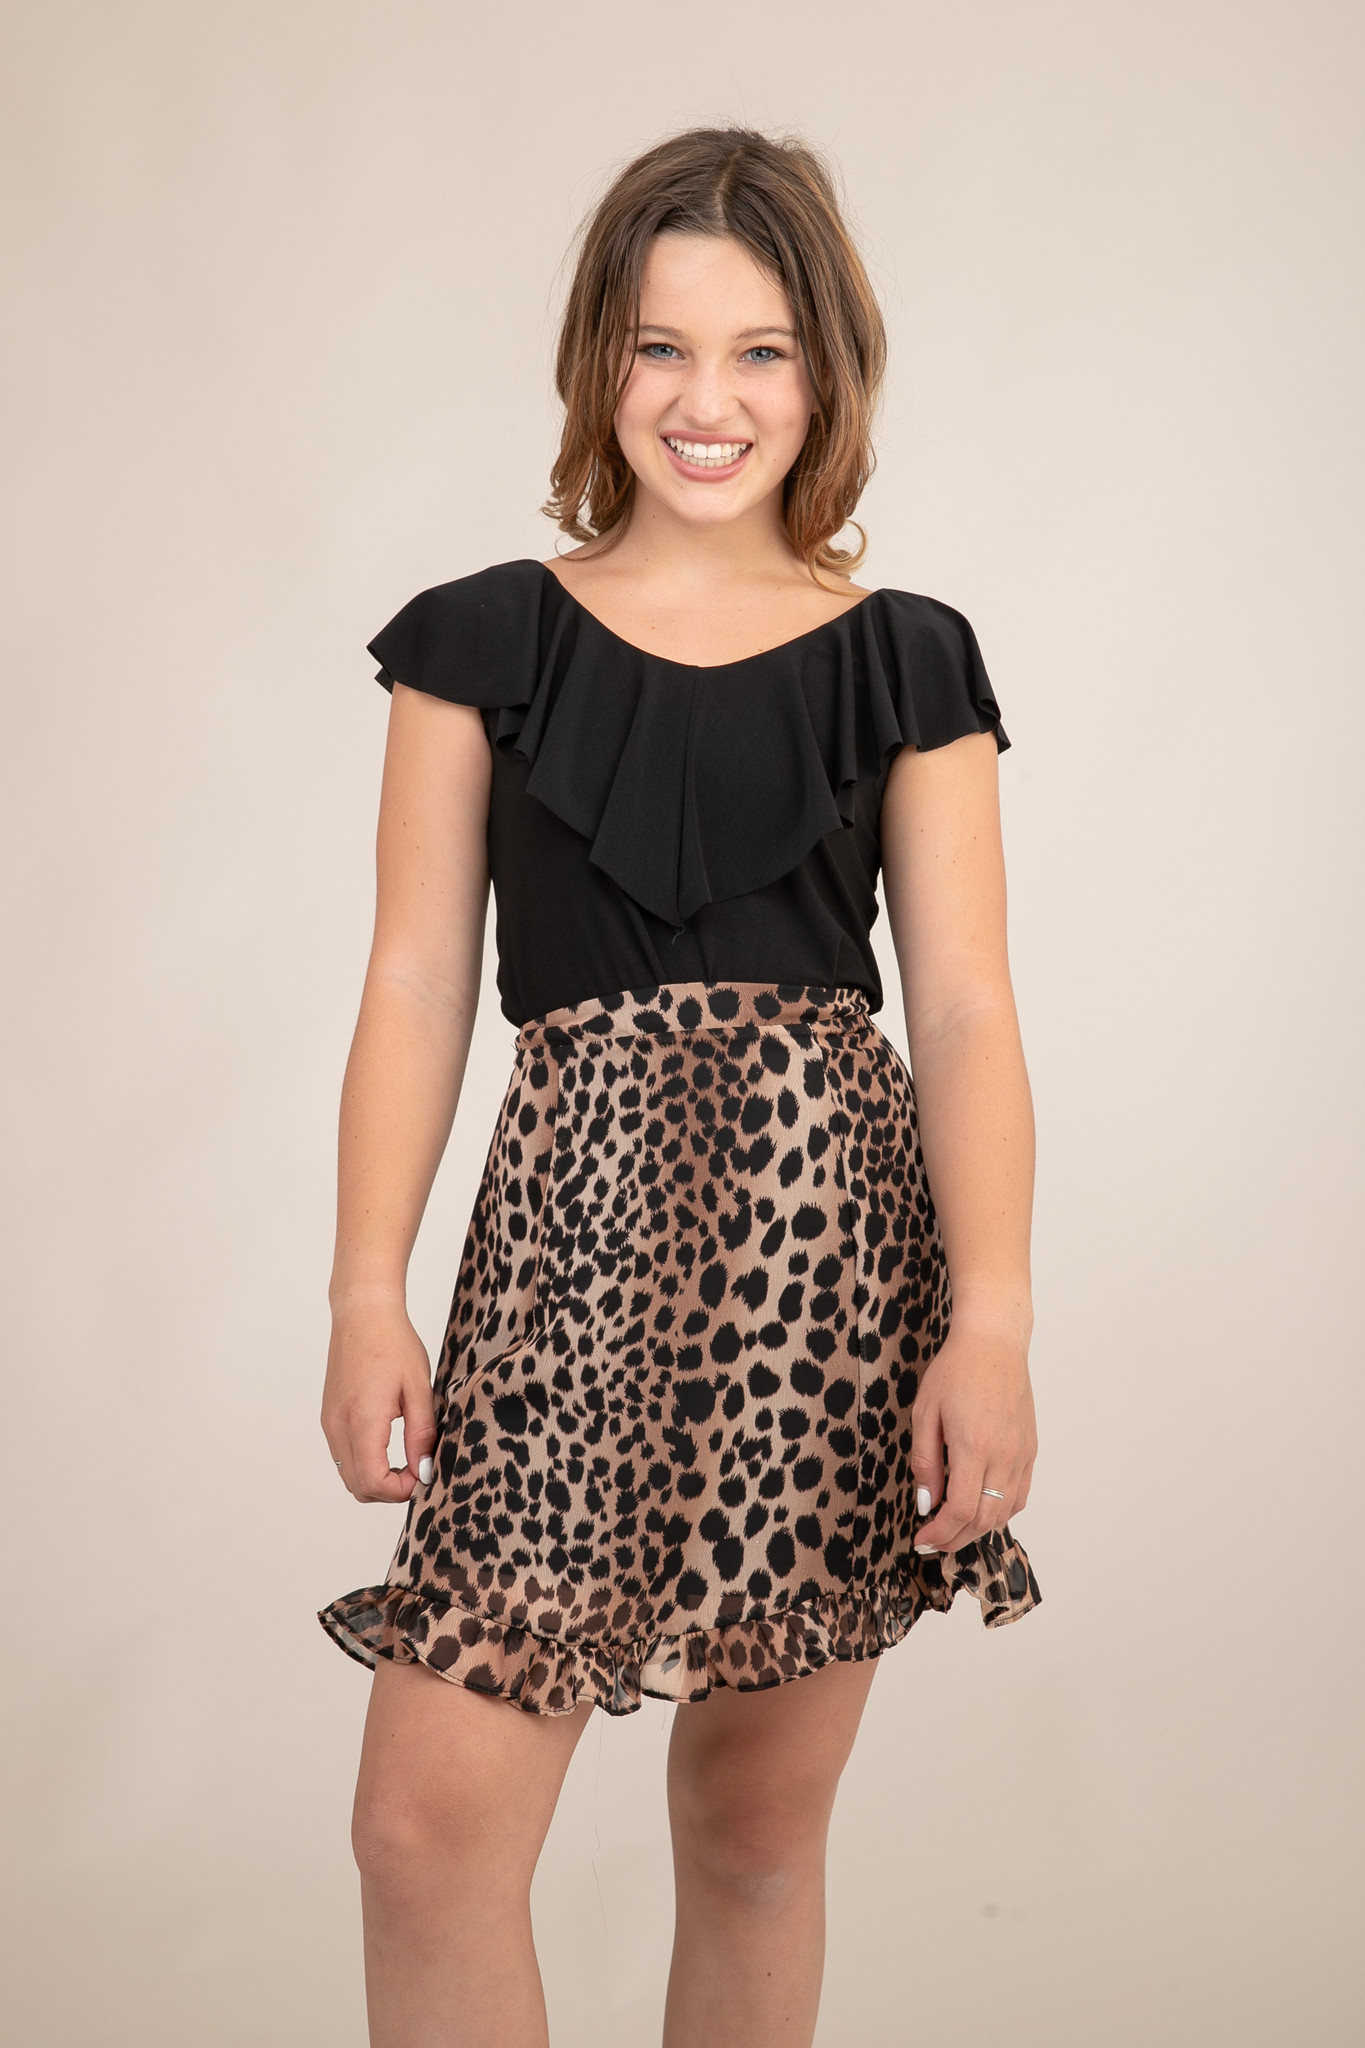 Tween Girls Cheetah Skirt in Longer Length full length view.